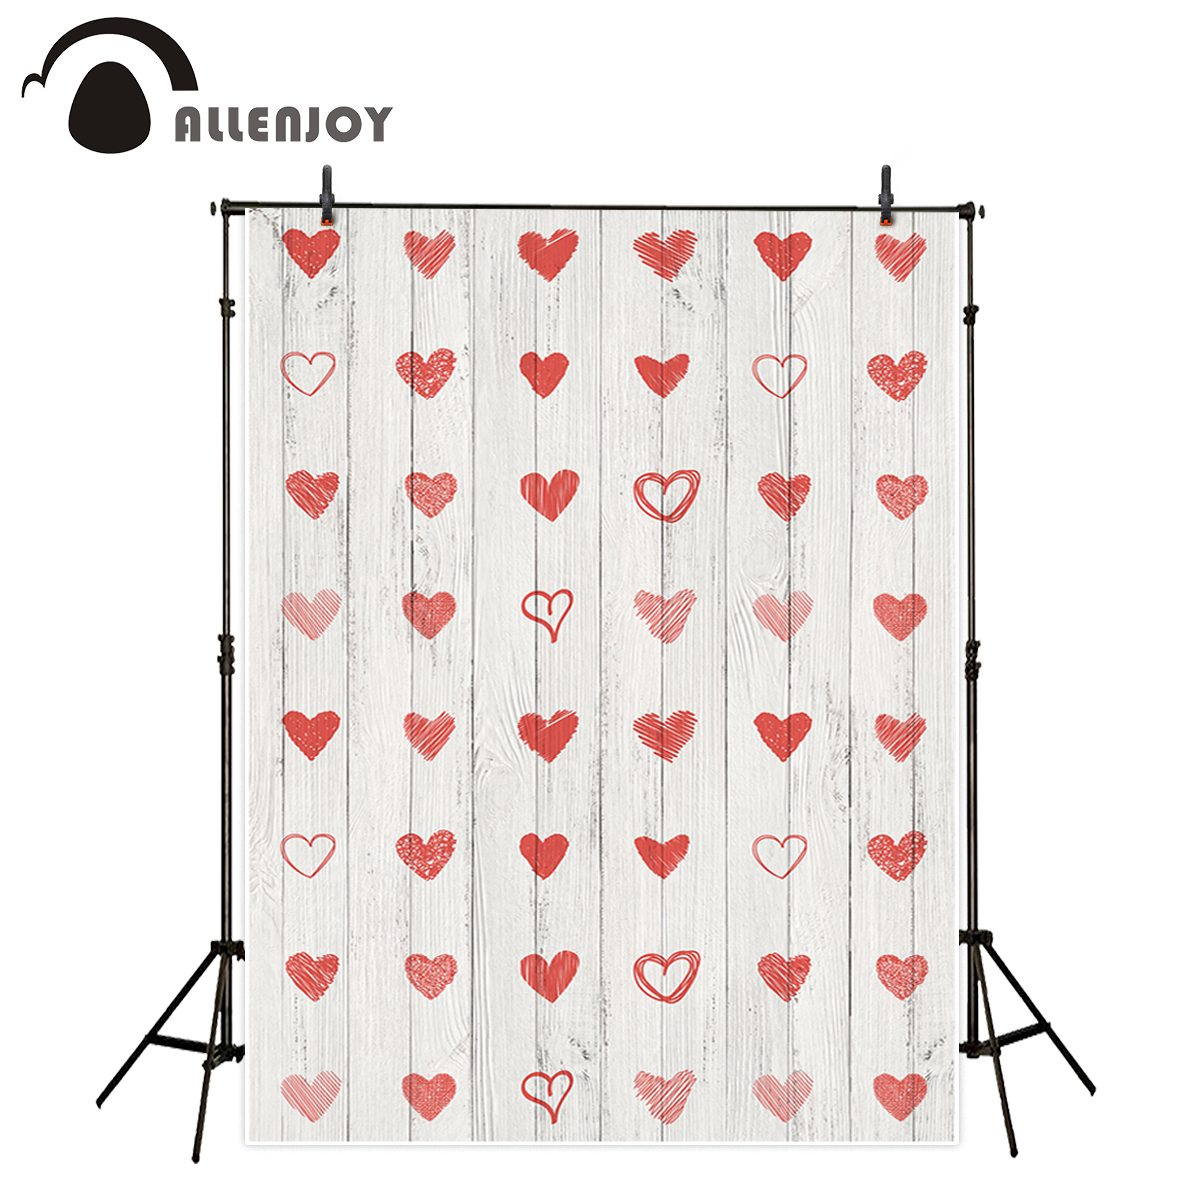 Allenjoy professional photography background Vintage white Wooden board red hearts romantic wedding backdrop newborn photocall